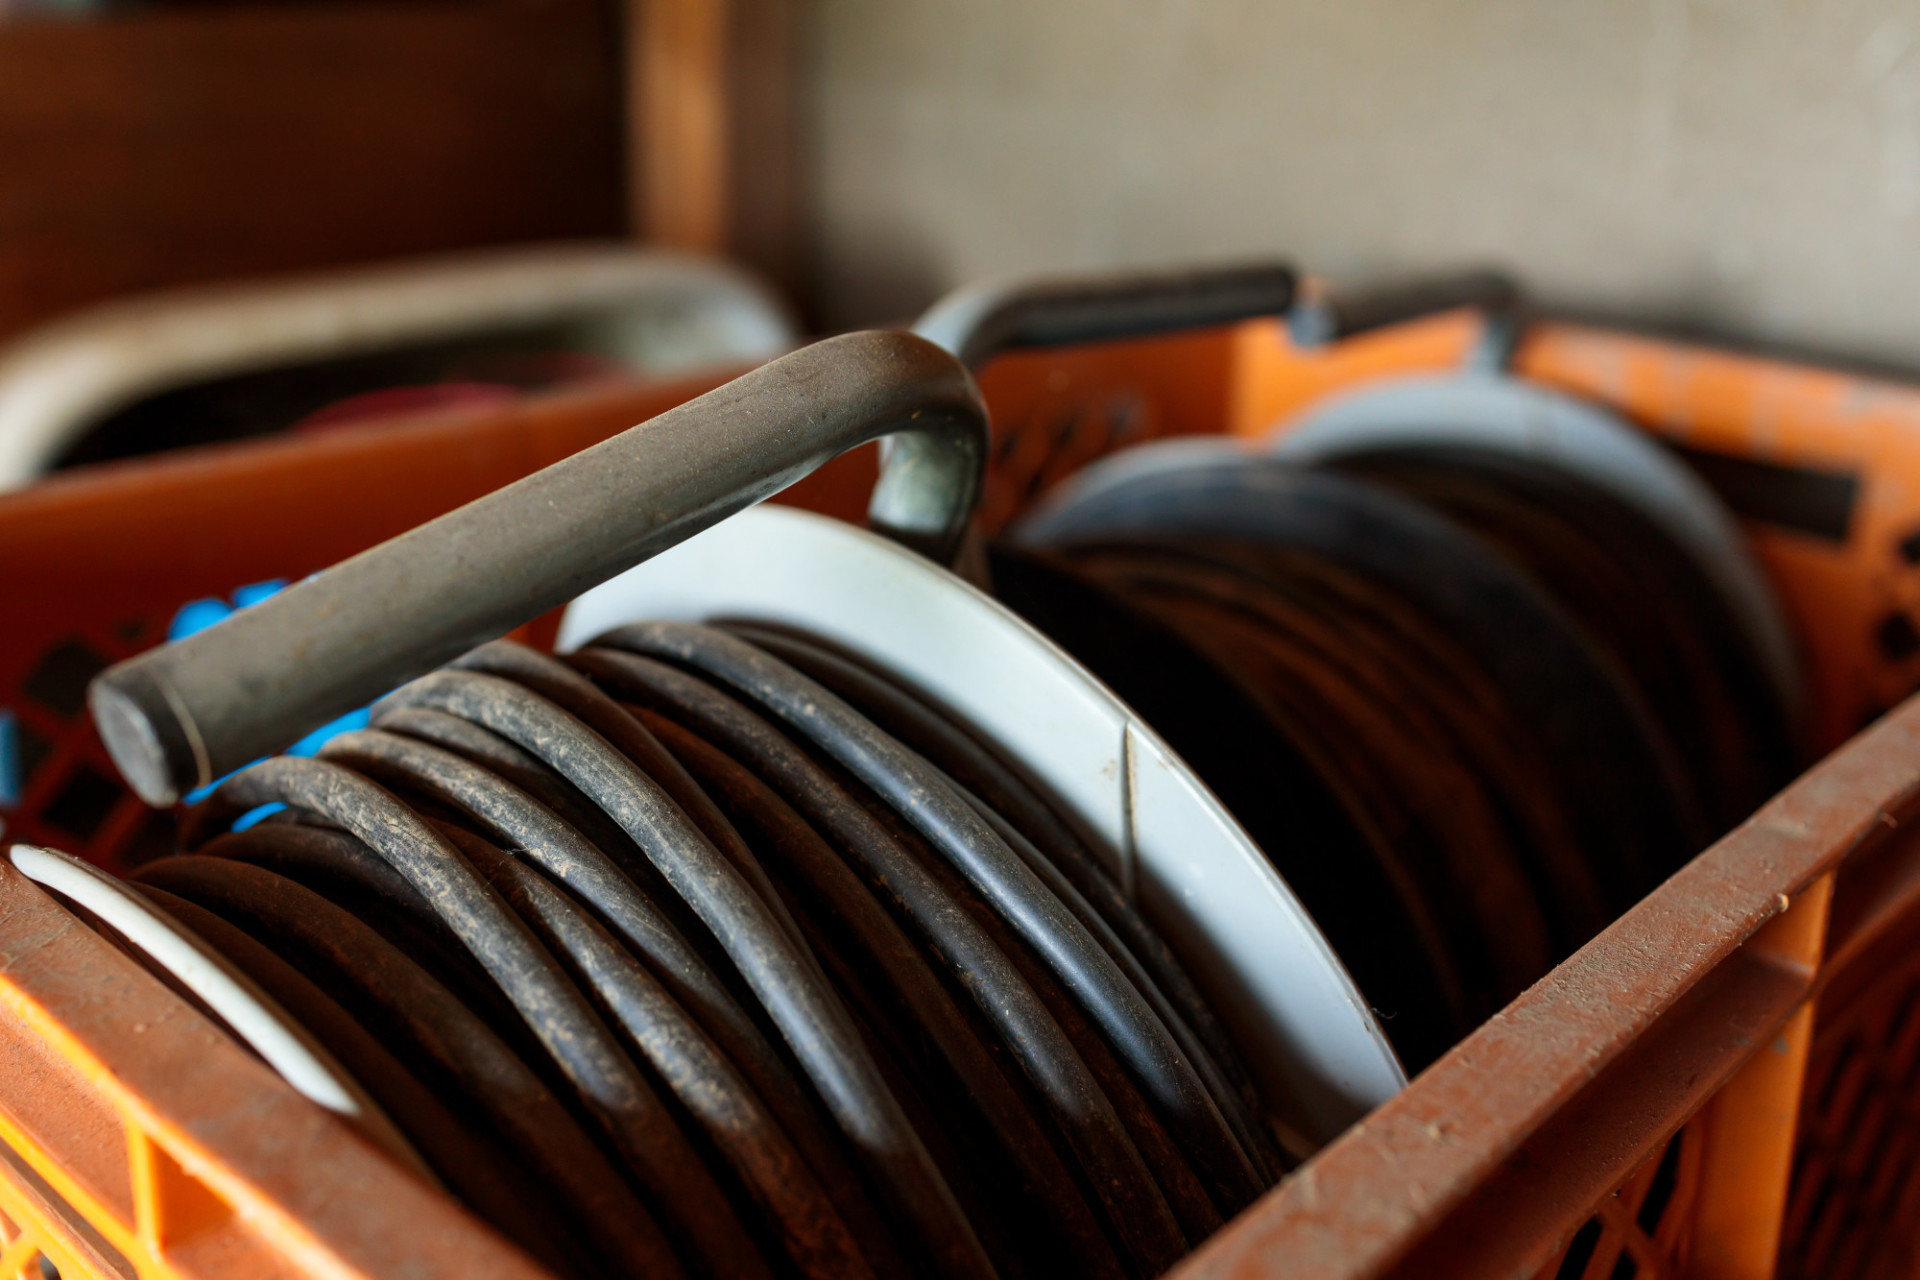 Cable drums in a box